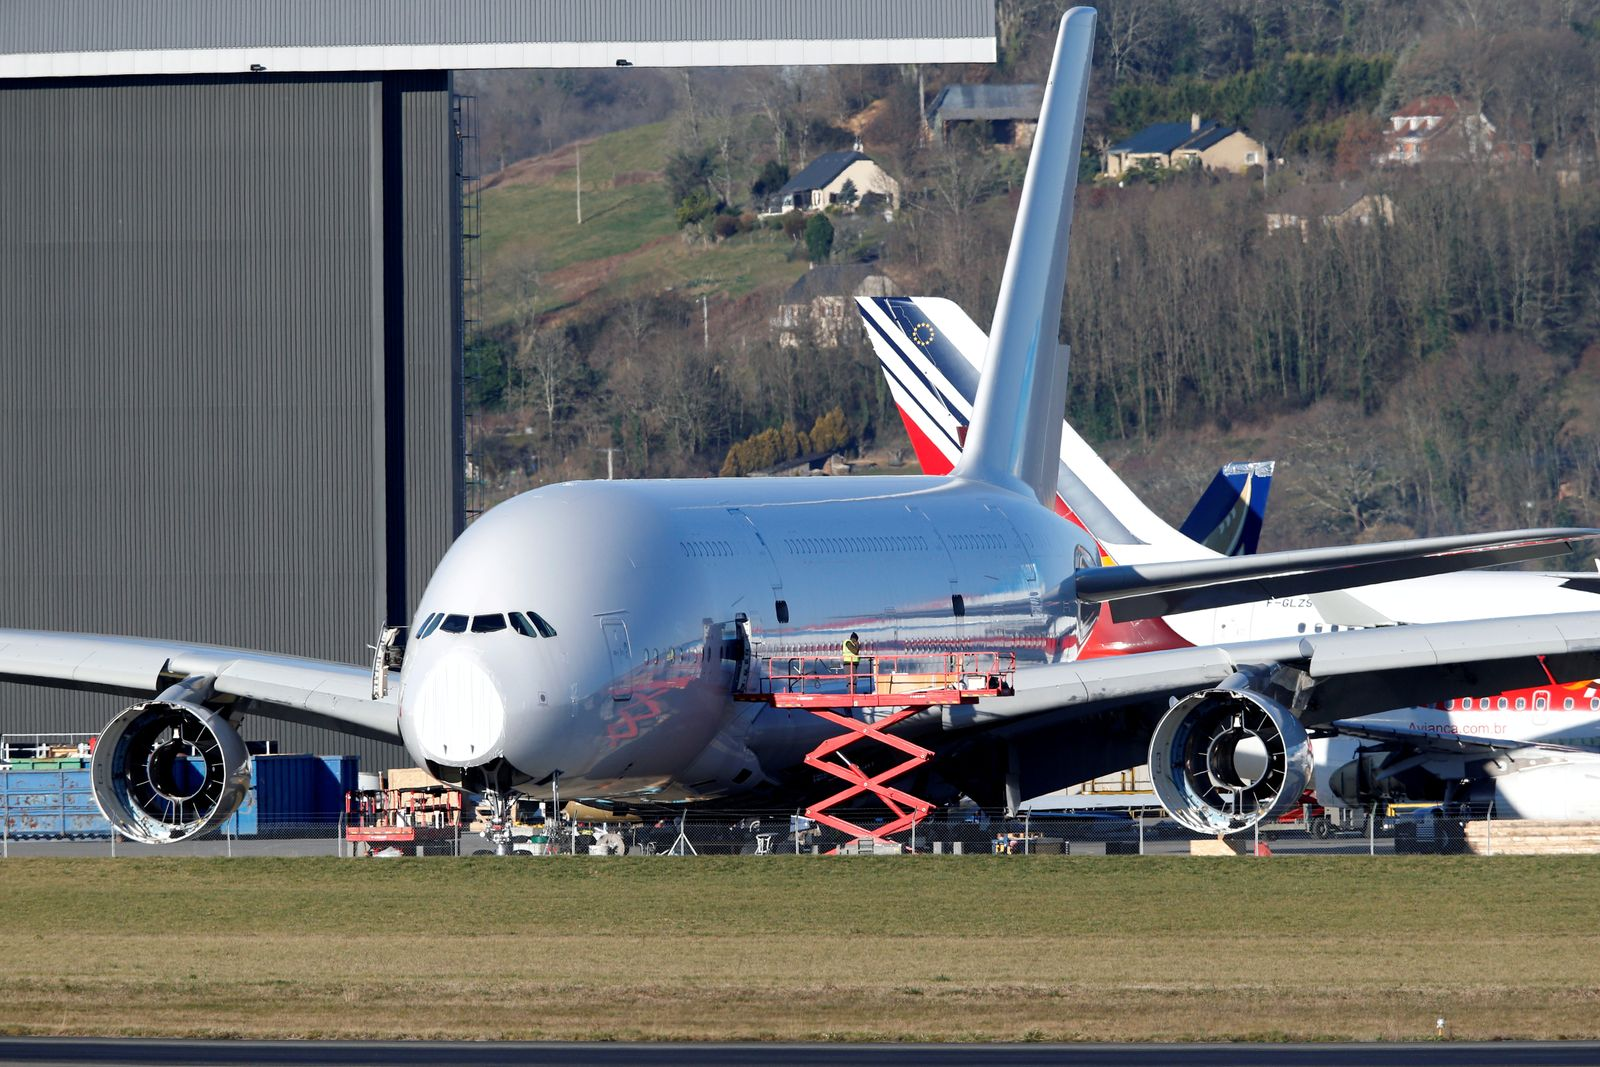 AIRBUS-GERMANY/